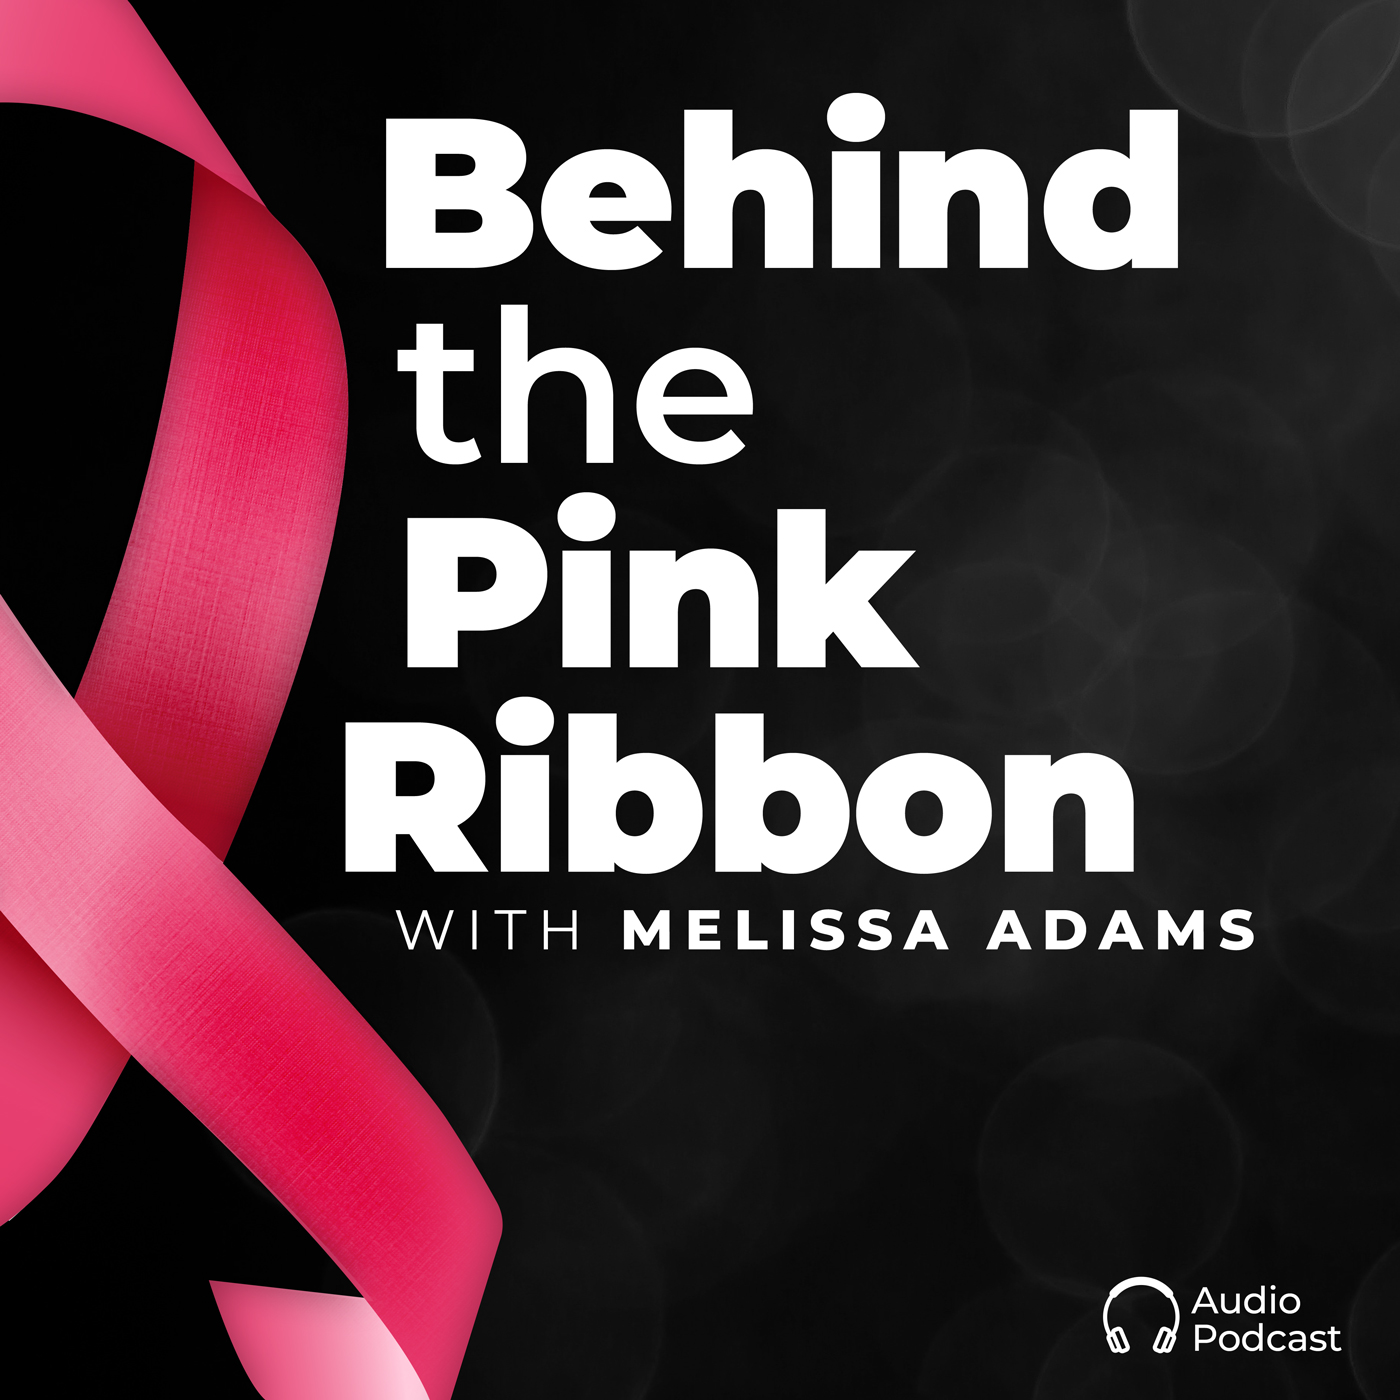 Behind the Pink Ribbon Podcast with Melissa Adams